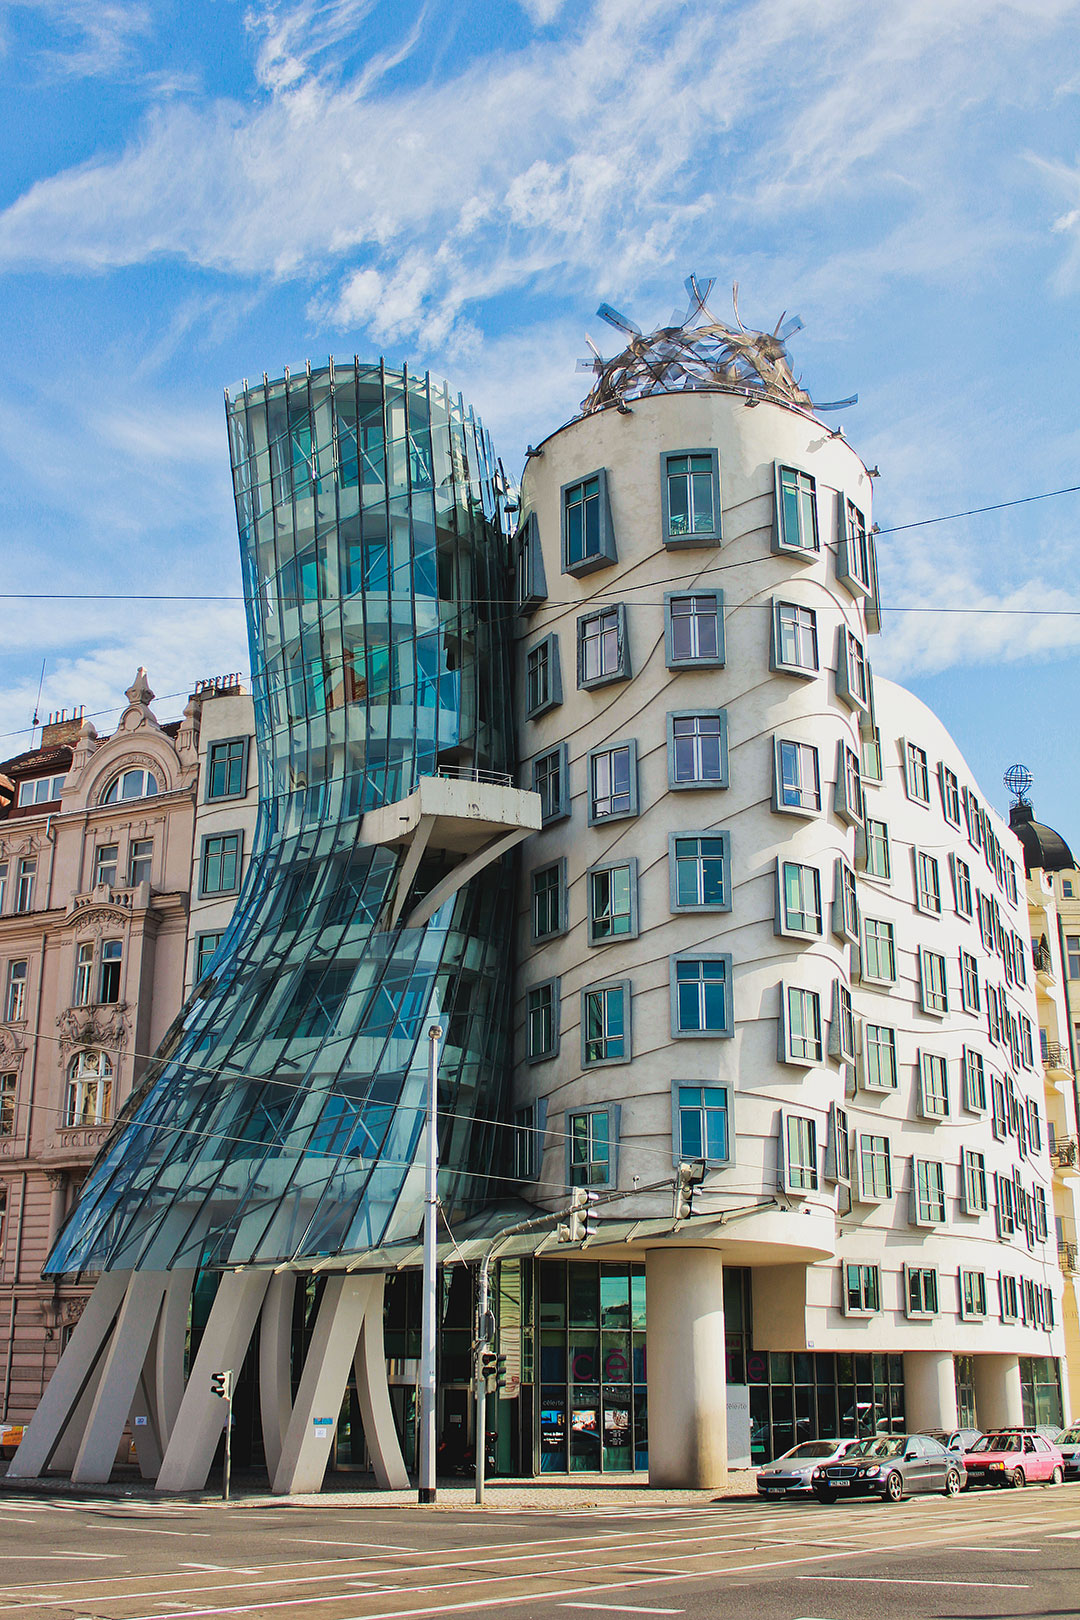 Dancing House Prague Attractions You Can't Miss